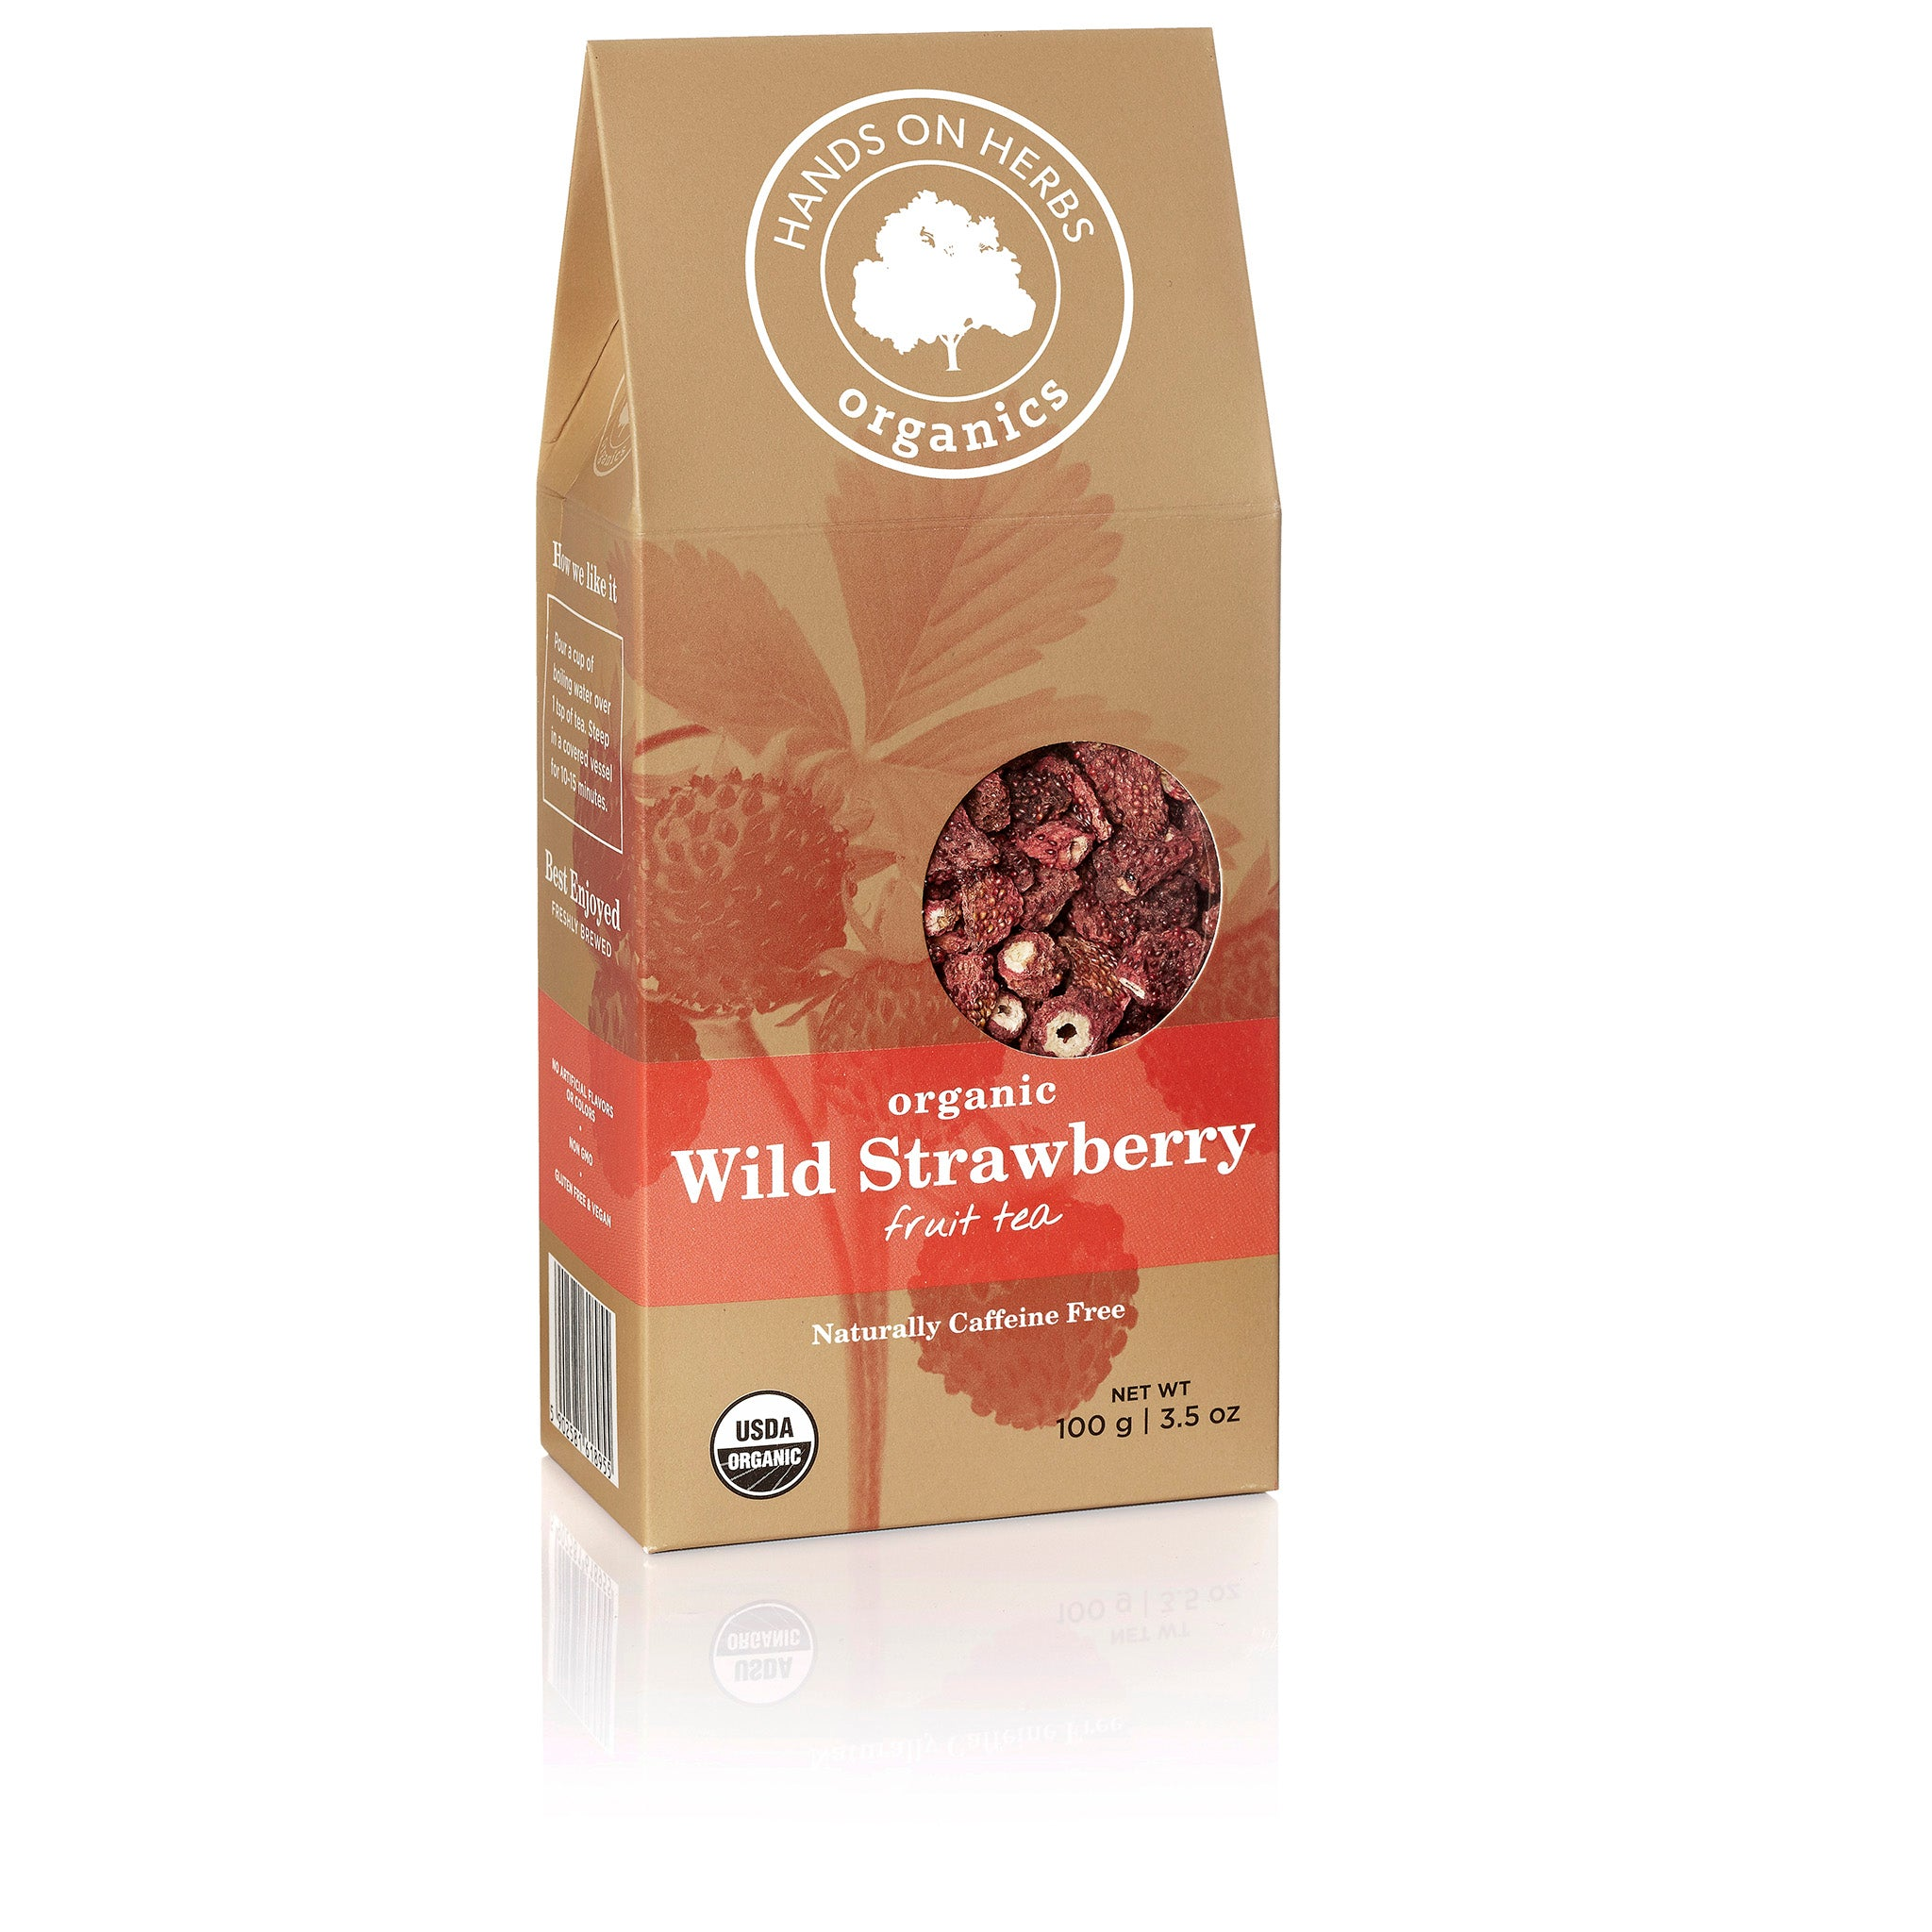 Wild Strawberry Tea